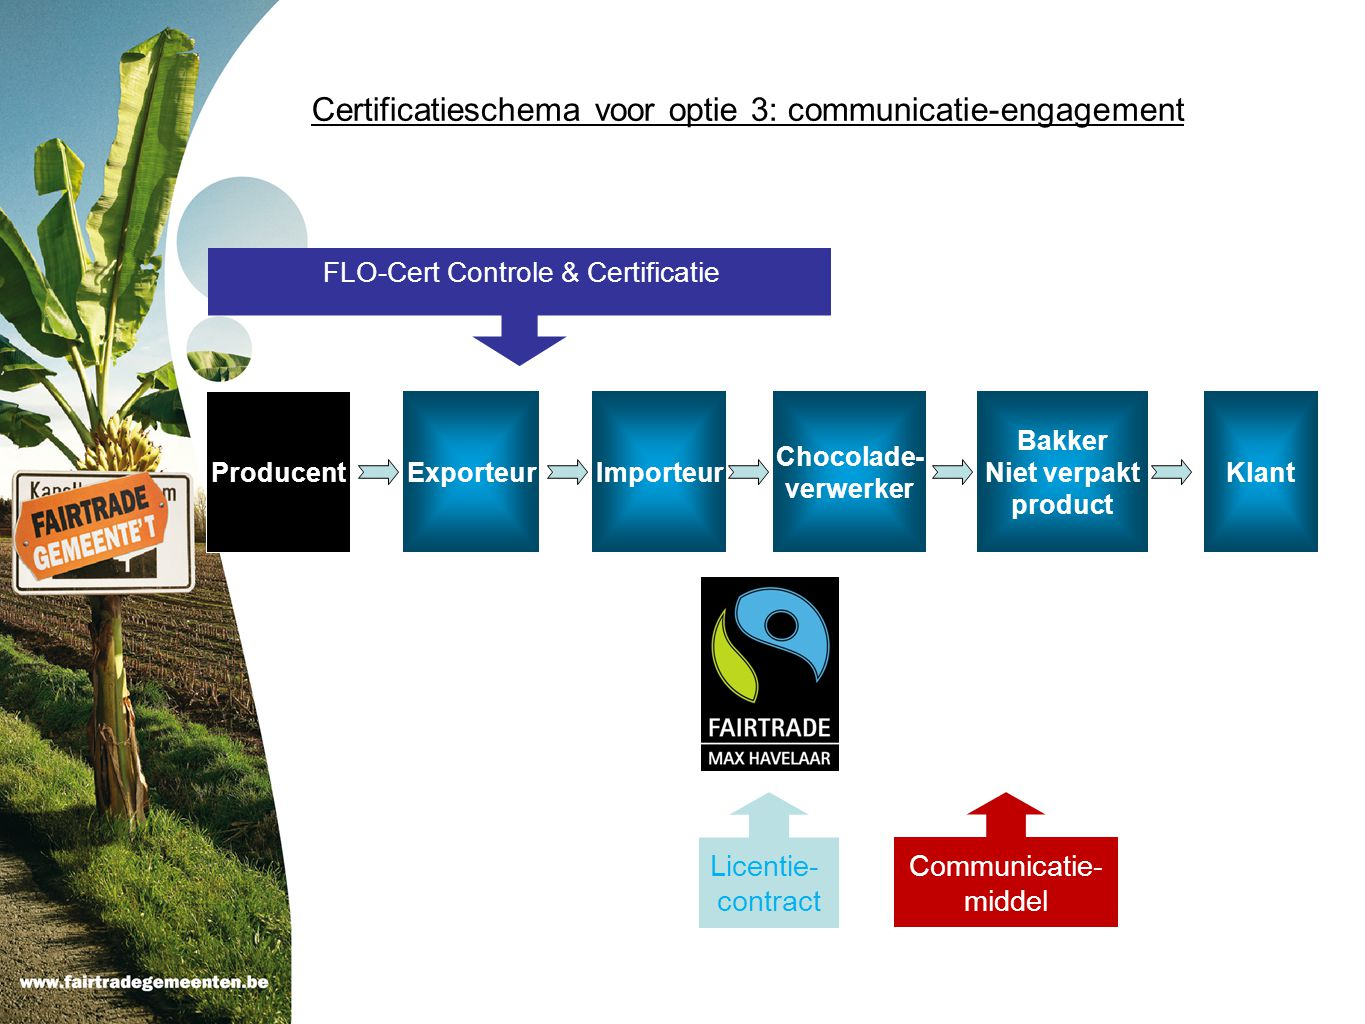 Certificatieschema voor optie 3: communicatie-engagement